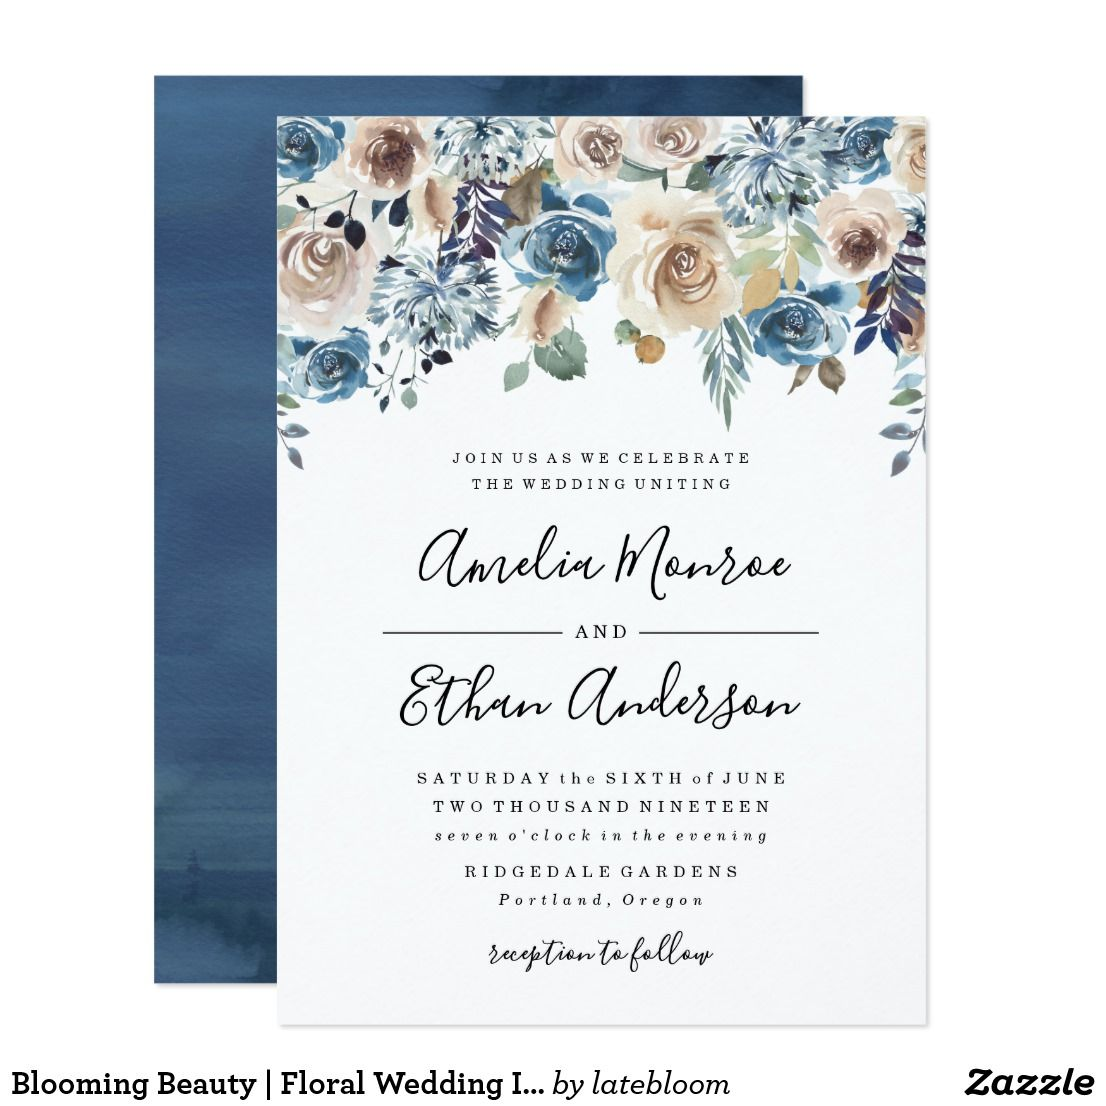 Blooming beauty floral wedding invitation awesome wedding